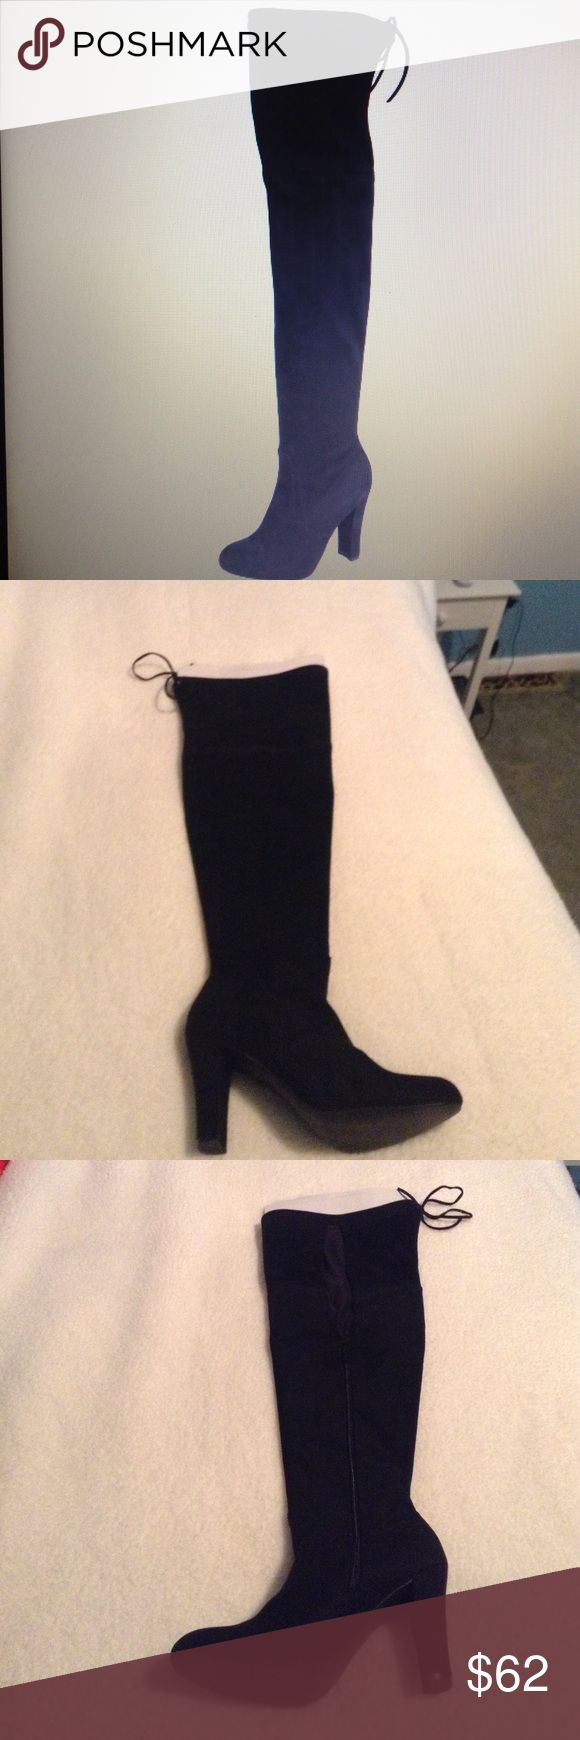 Christian Siriano Ziya Black Suede Thigh High boot Christian Siriano for Payless, Ziya Black Suede Thigh High Boot, Smooth Material, Brand New Never Worn, Has a Calf extension sewn in for more Calf room w/ Black Lycra and is hidden on the inside outer side of the boot hidden from view, Has a 4 inch Heel, Ties at the top, Comes in original Box😄 christian Siriano for Payless Shoes Over the Knee Boots